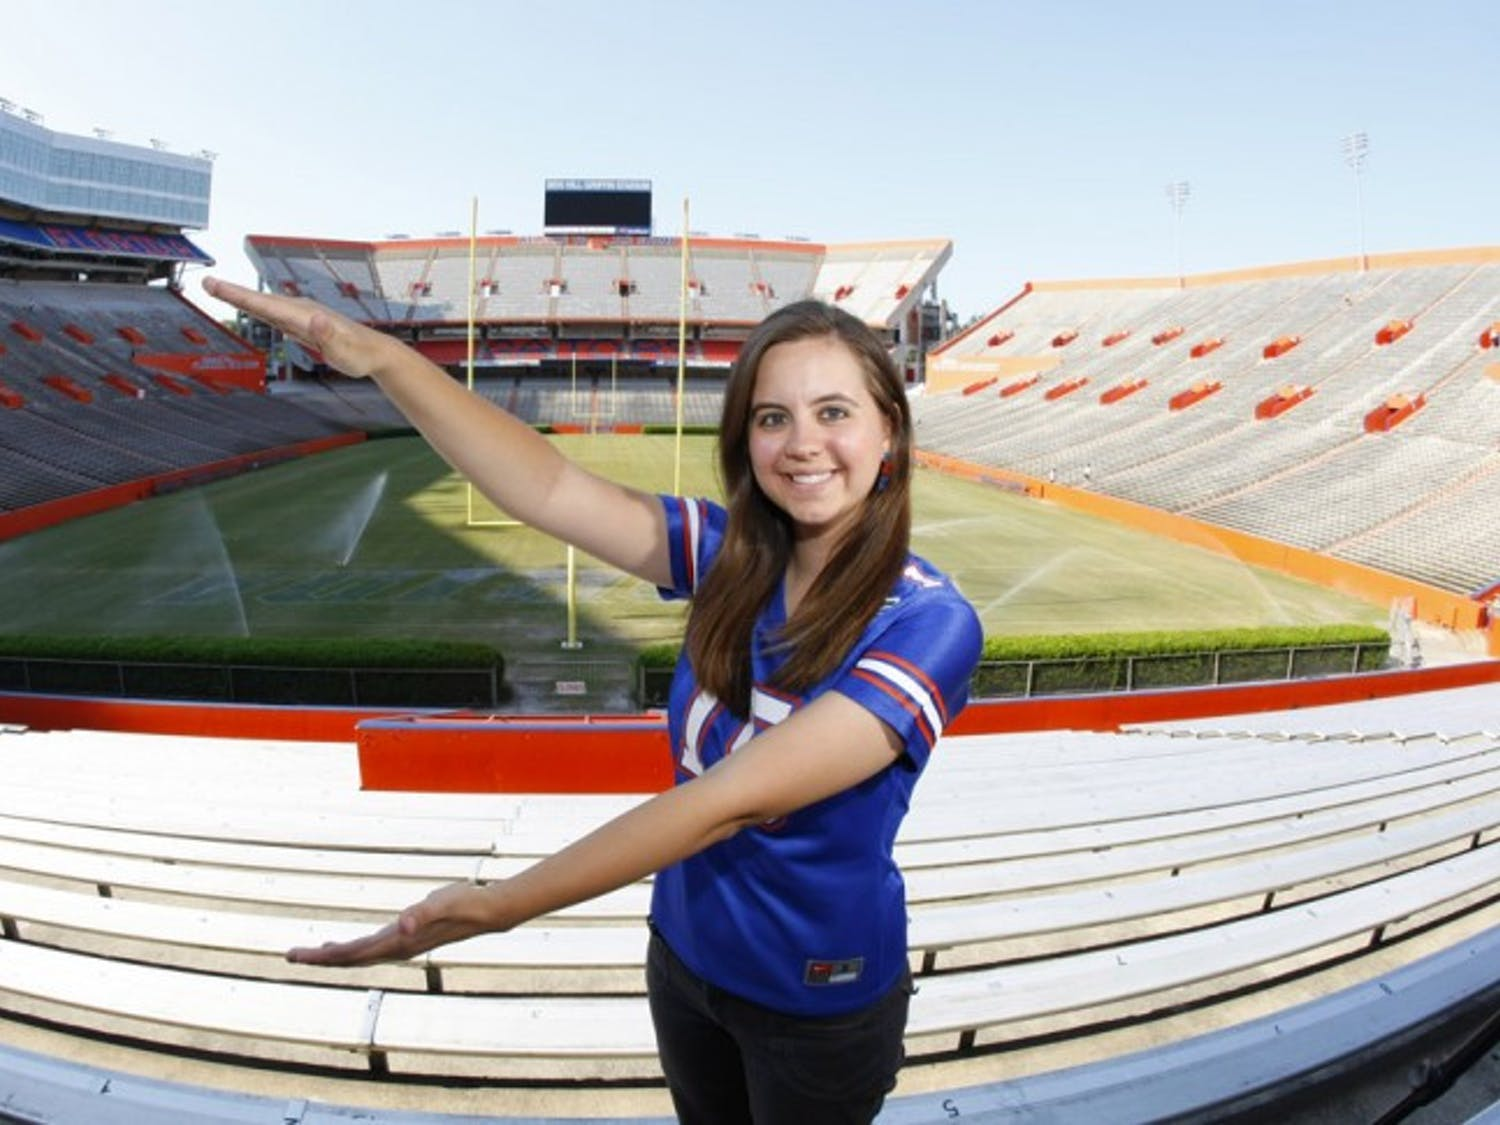 Elizabeth Graham, winner of ESPNU's Ultimate College Sports Fan contest, poses in Ben Hill Griffin Stadium on Wednesday.